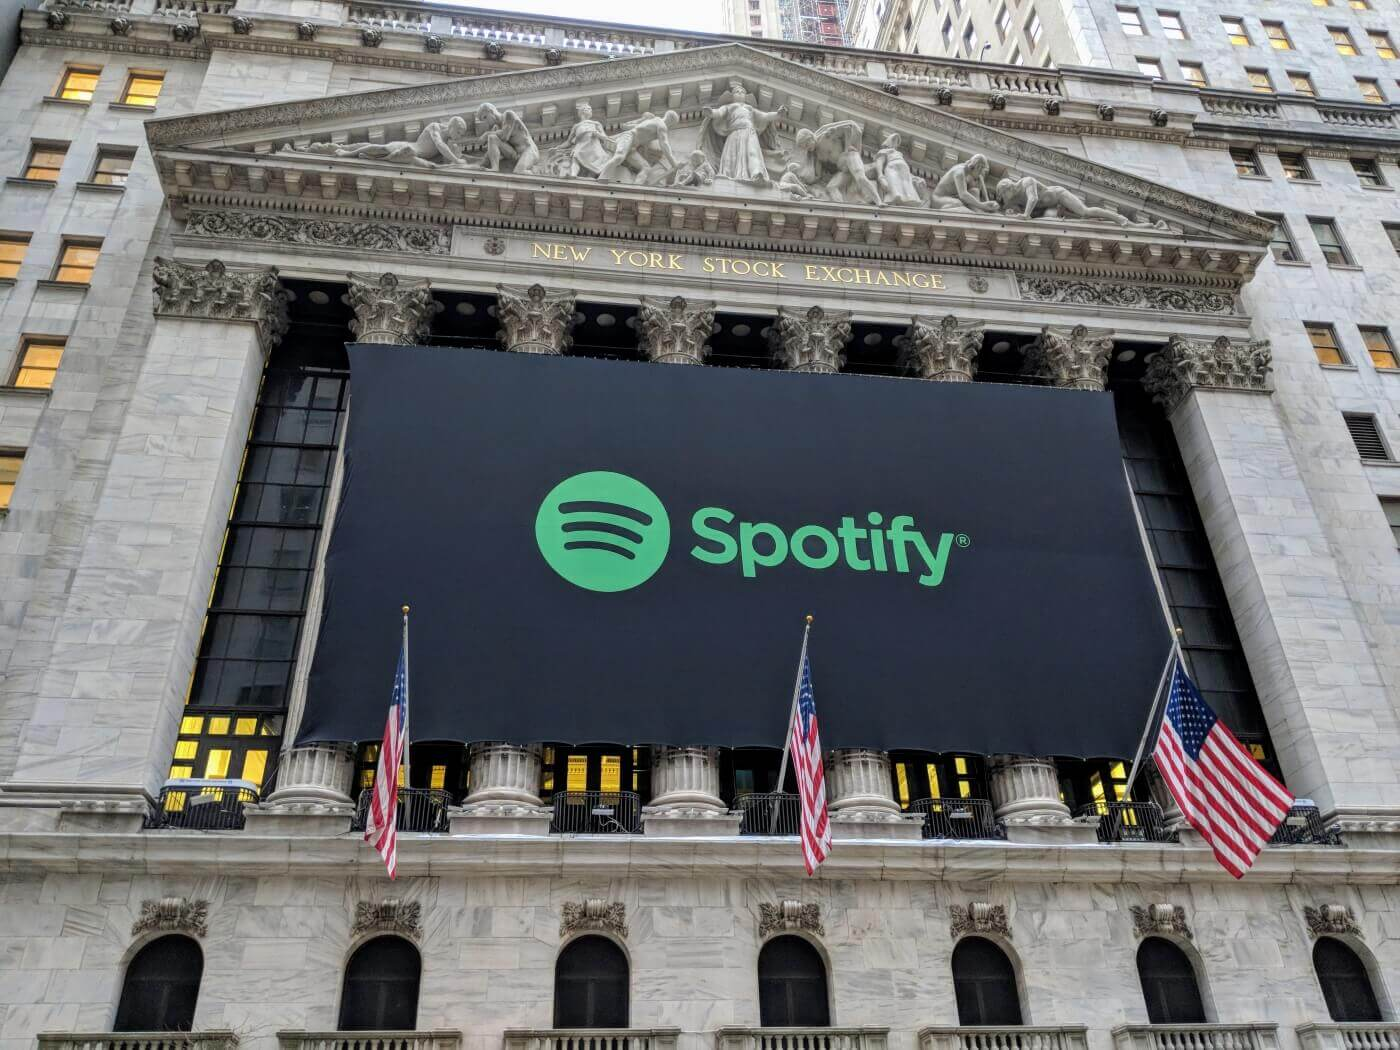 Spotify hits 271 million monthly active users as growth continues